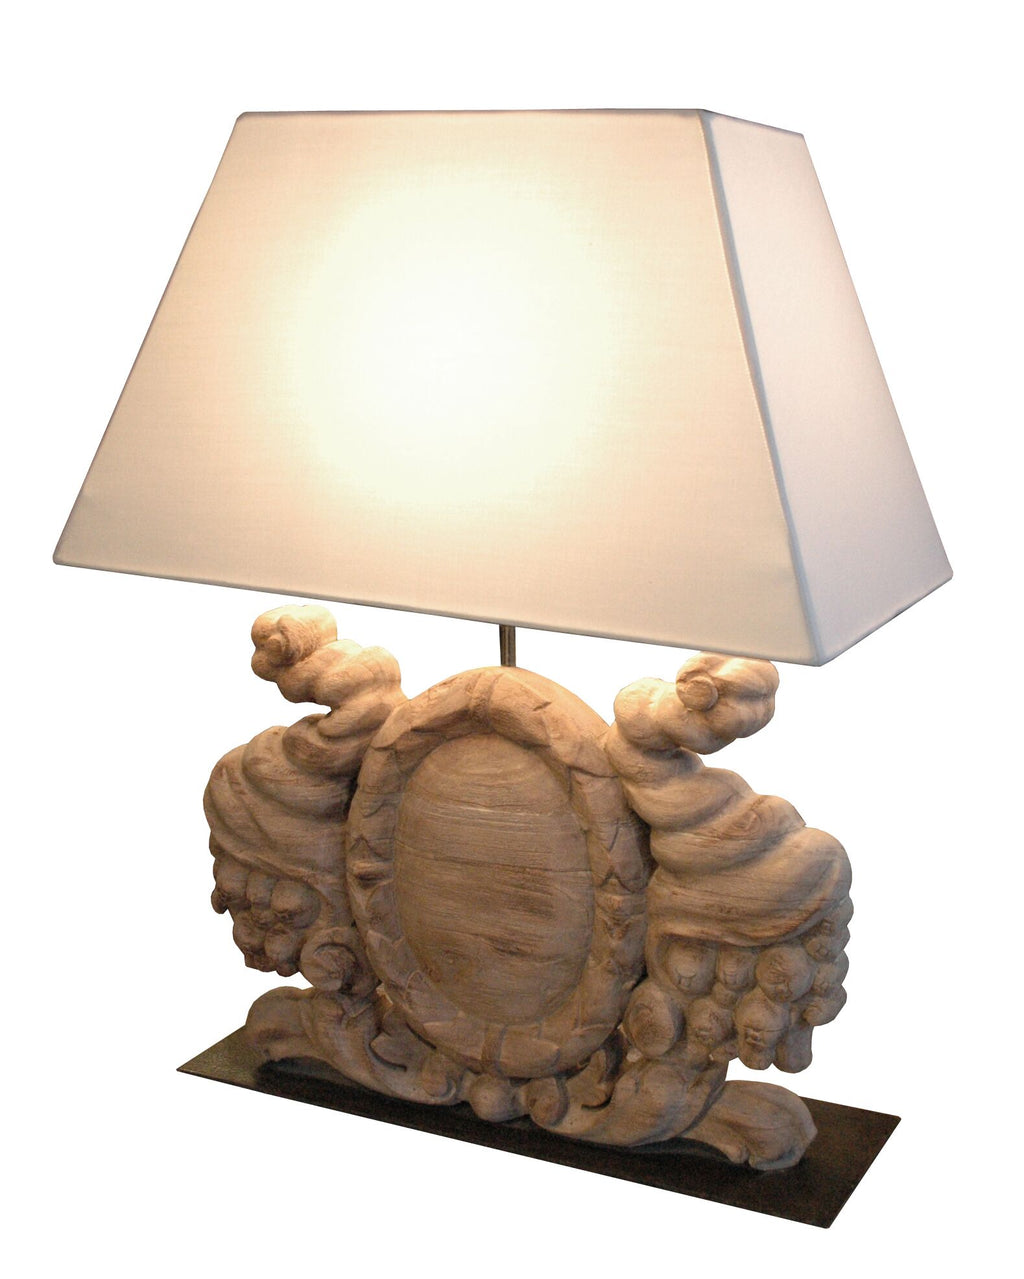 BIARRITZ TABLE LAMP - Donna's Home Furnishings in Houston